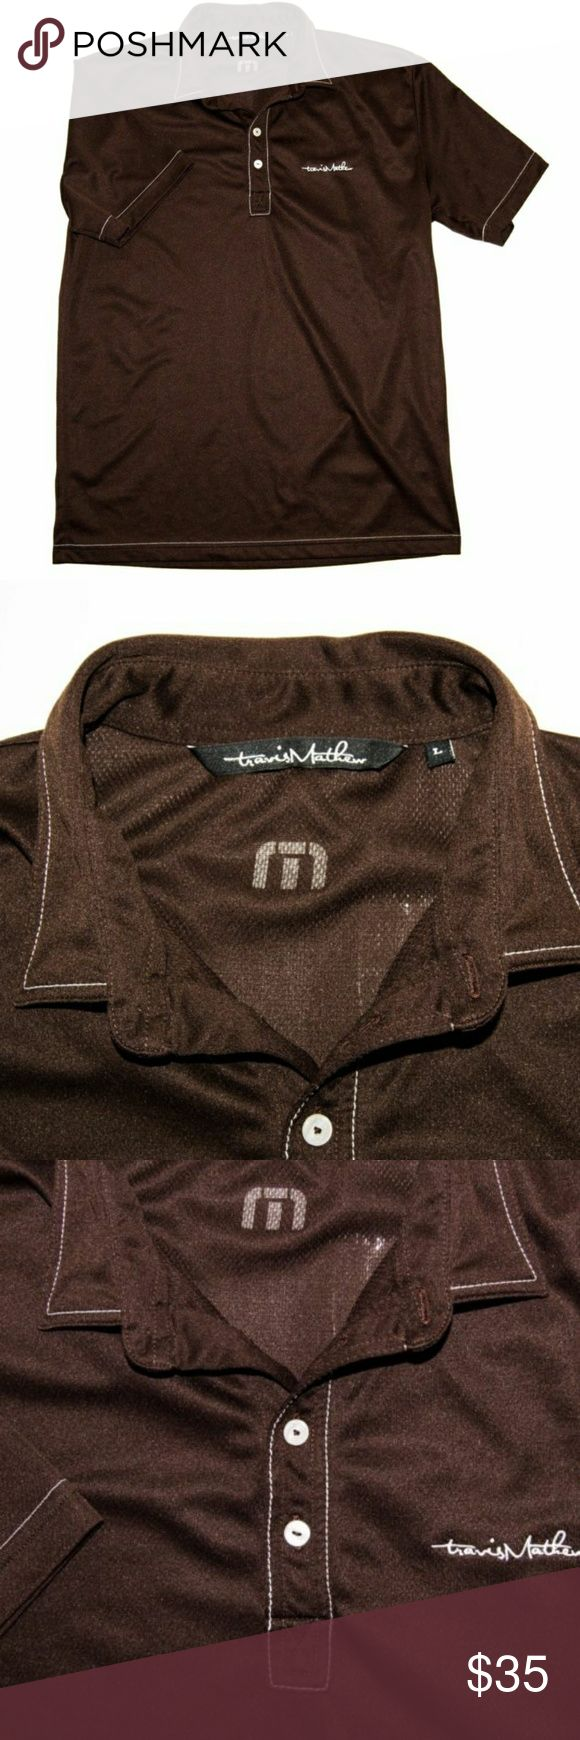 TRAVIS MATHEW GOLF POLO SHIRT BROWN POLY TRAVIS MATHEW GOLF POLO SHIRT BROWN Polyester size large Travis Mathew Shirts Polos